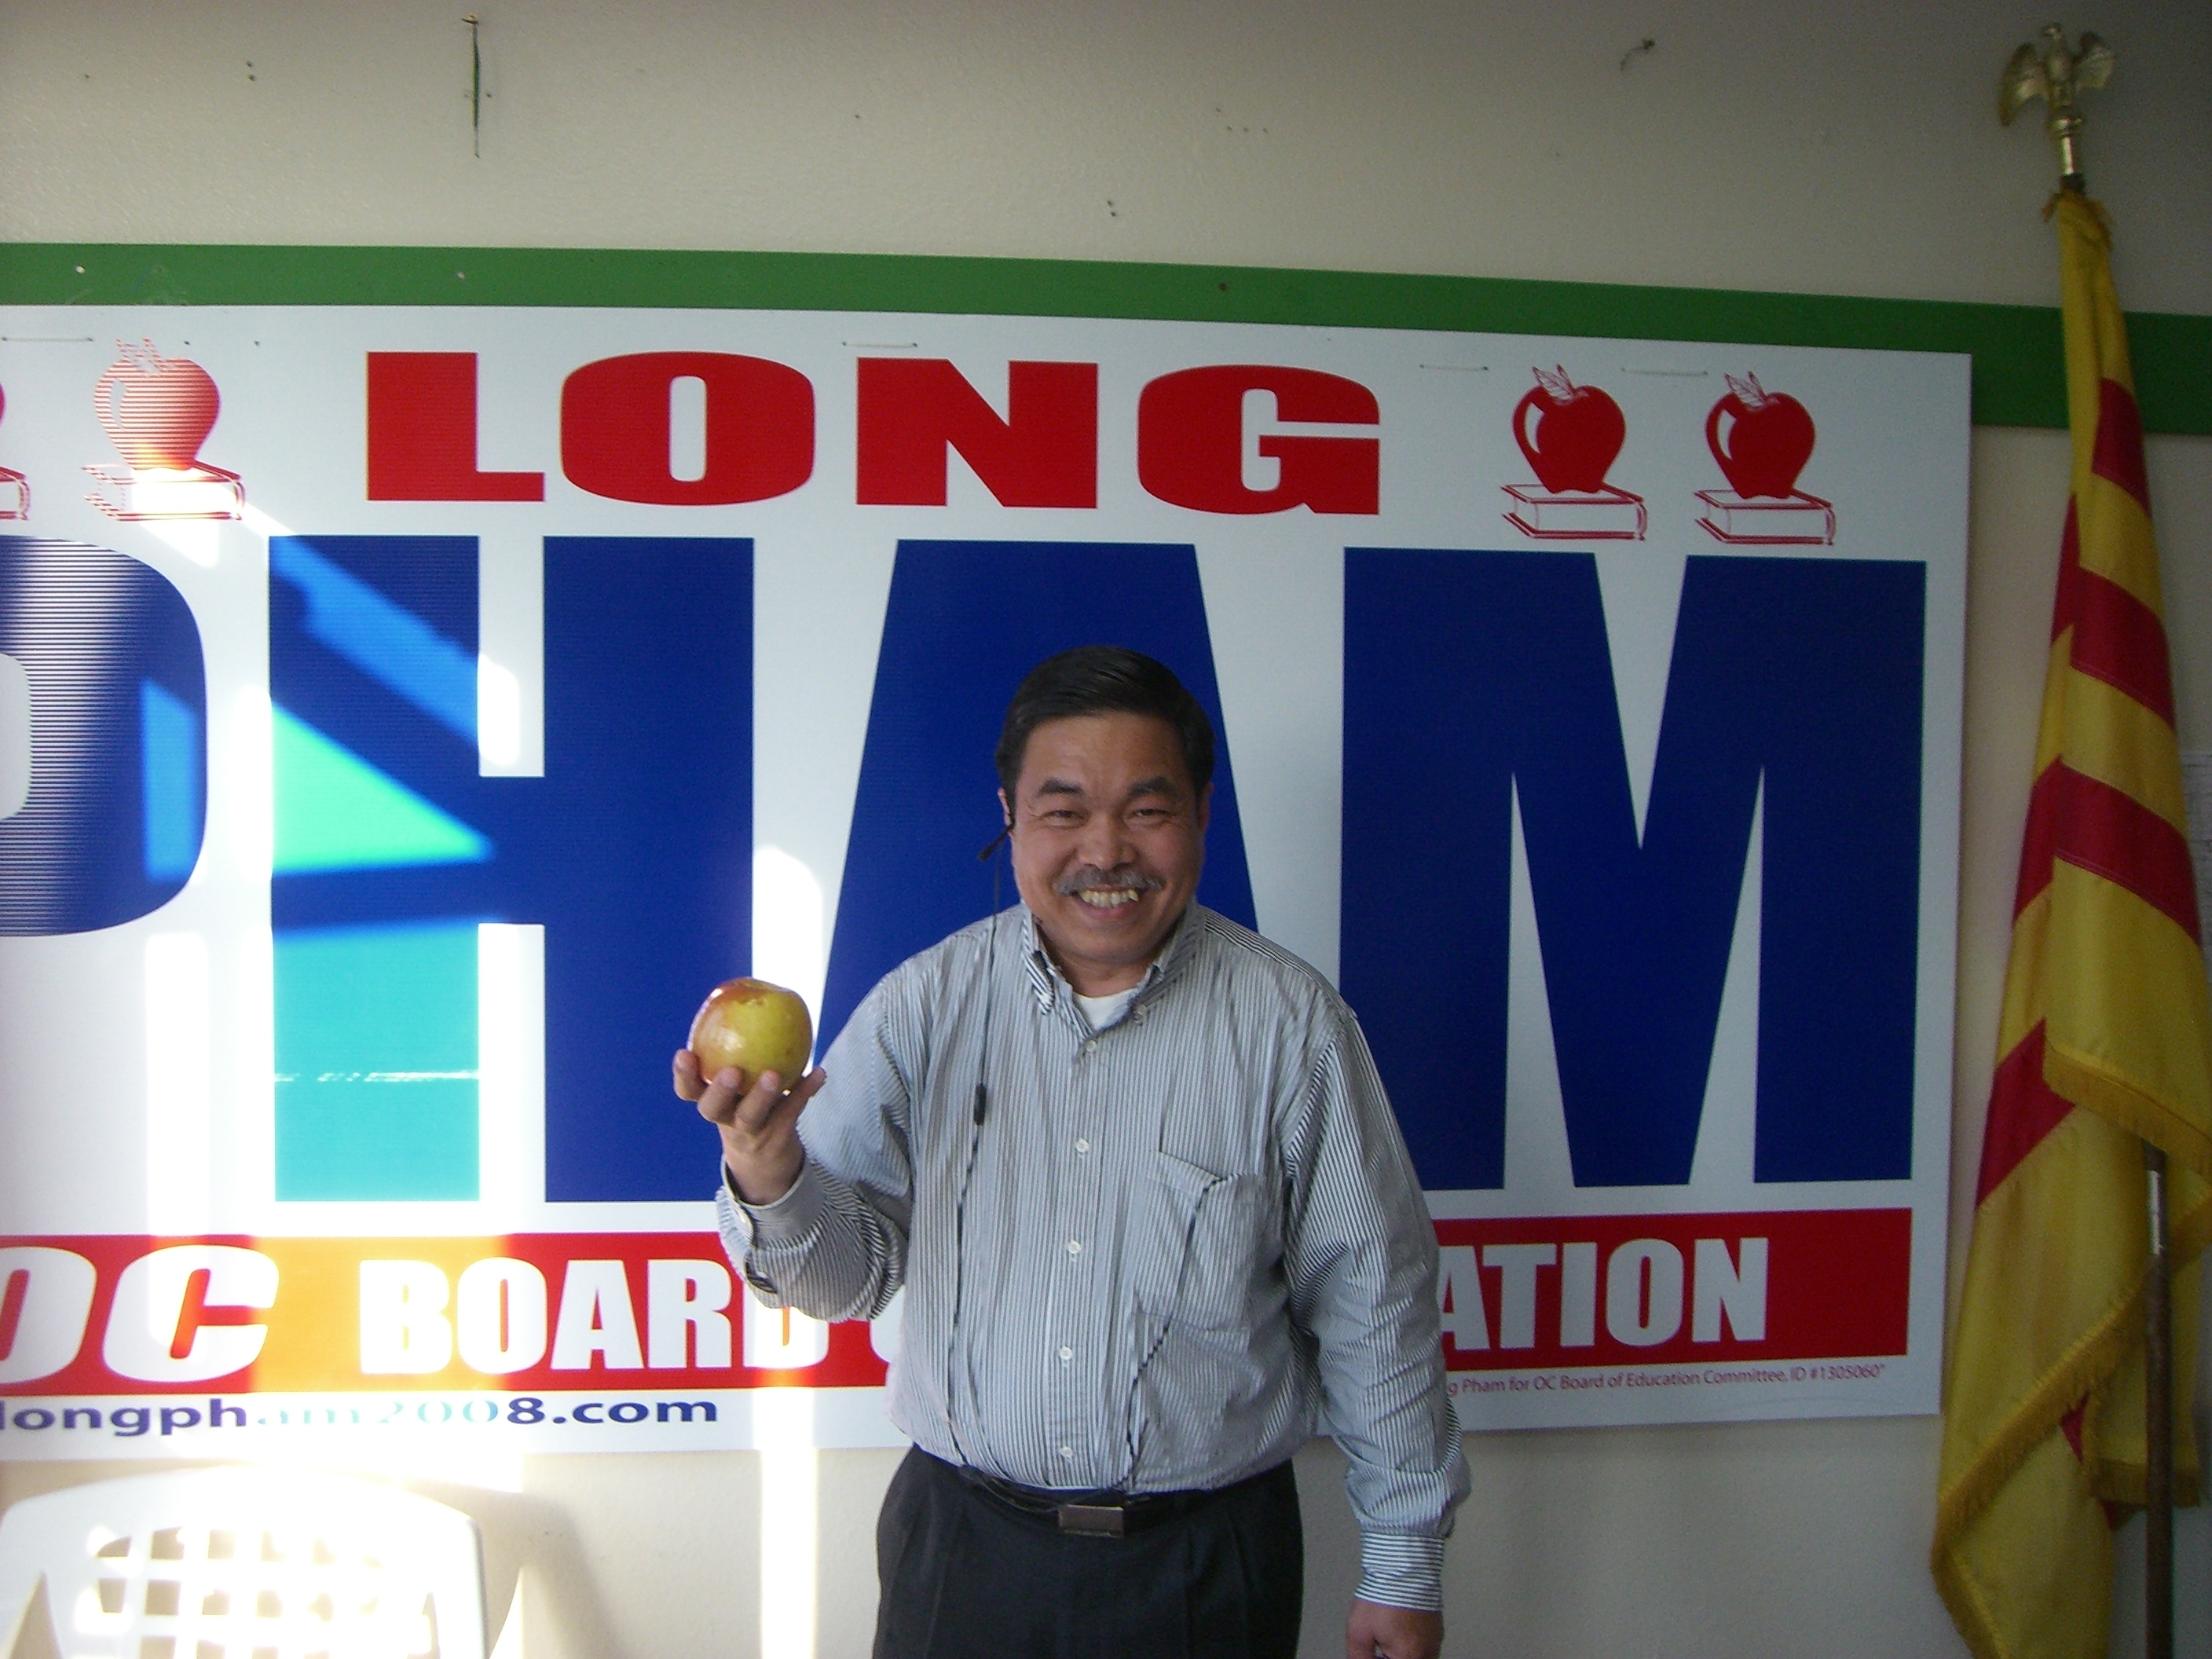 The final results for the June 3rd Primary have finally been posted. Long Pham, candidate for the Orange County Board of Education District 1 was elected to replace 4 term […]